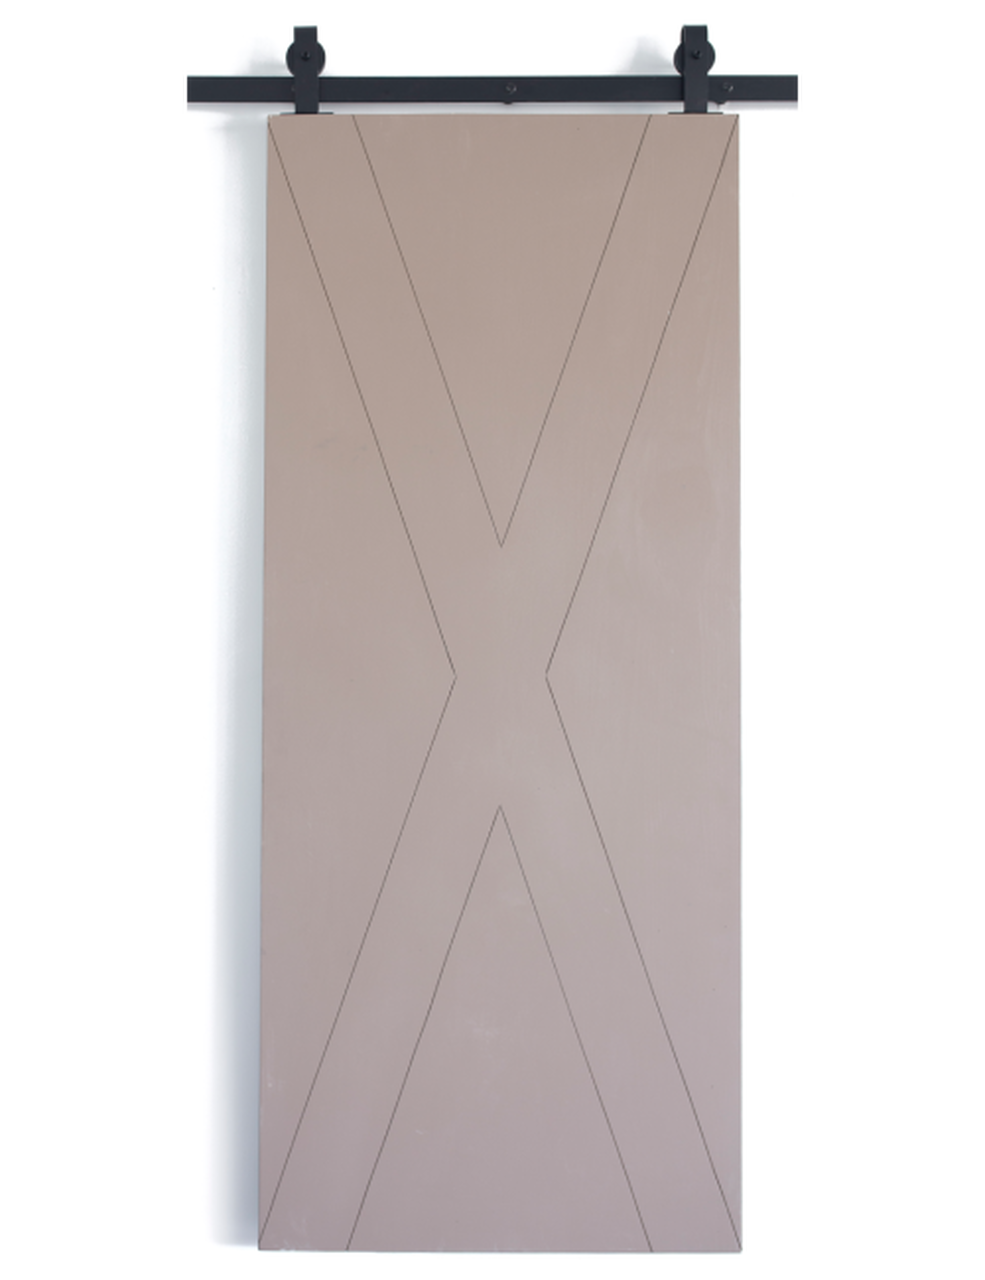 wood barn door with modern etched x pattern